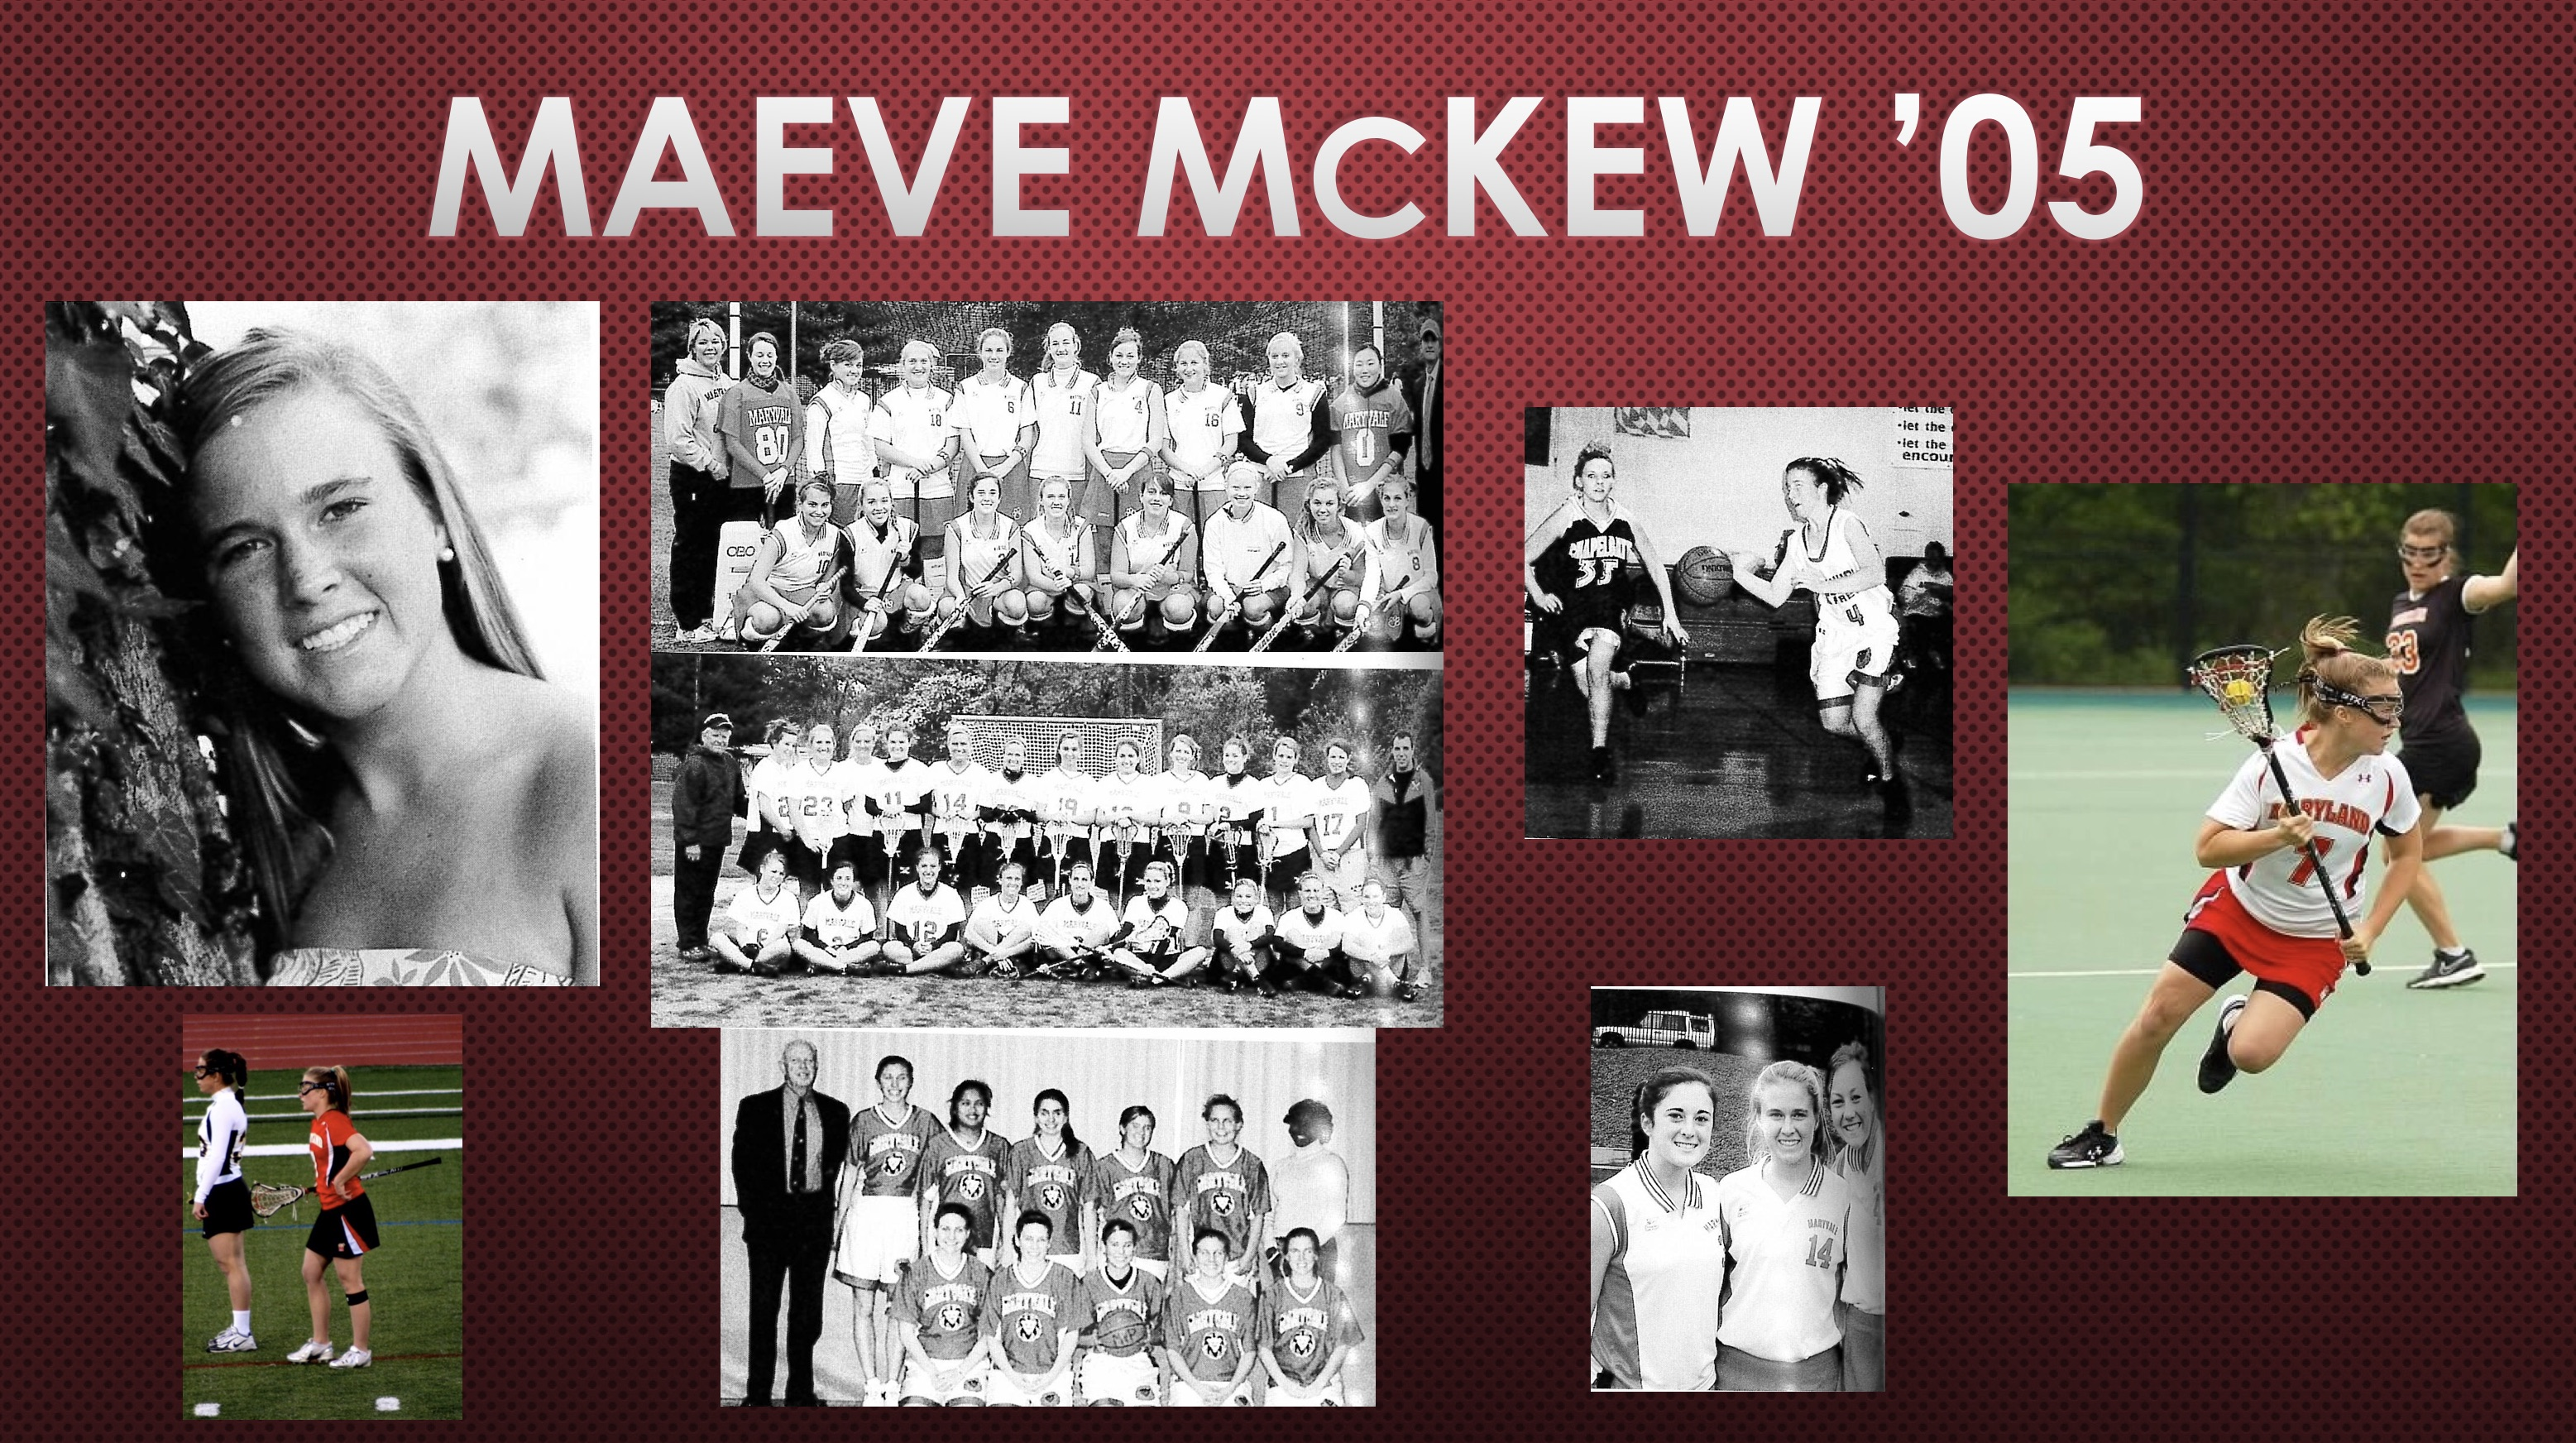 2018 Athletic Hall of Fame Inductee: Maeve McKew '05